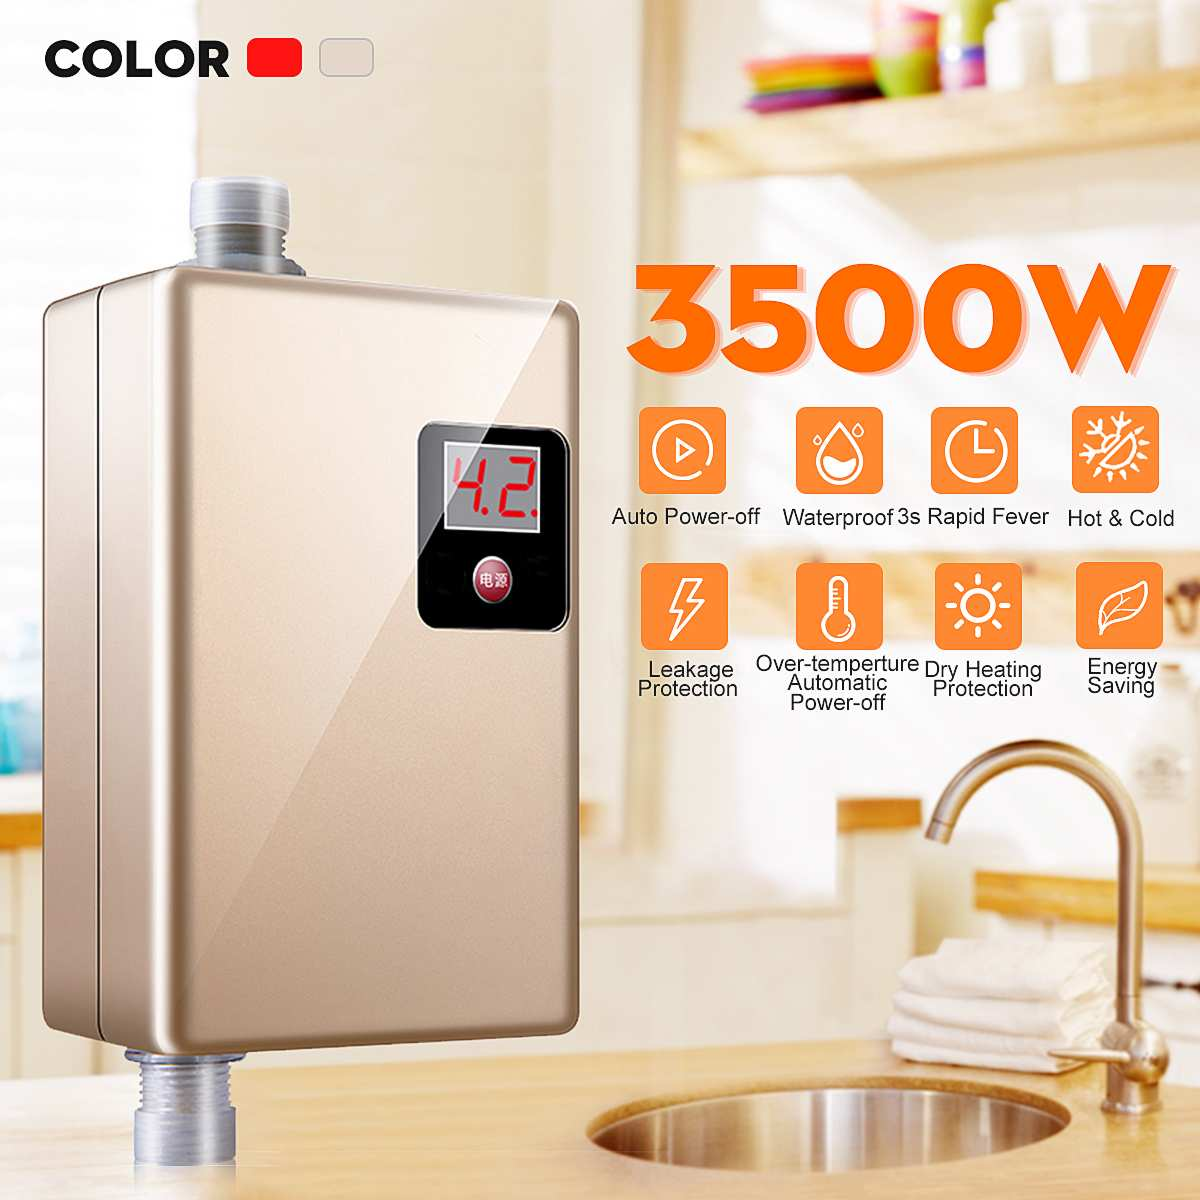 Fast Hot 220V 3500W Mini Electric Tankless Instant Hot Water Heater Kitchen Faucet Tap Heating Instantaneous Waterproof Shower